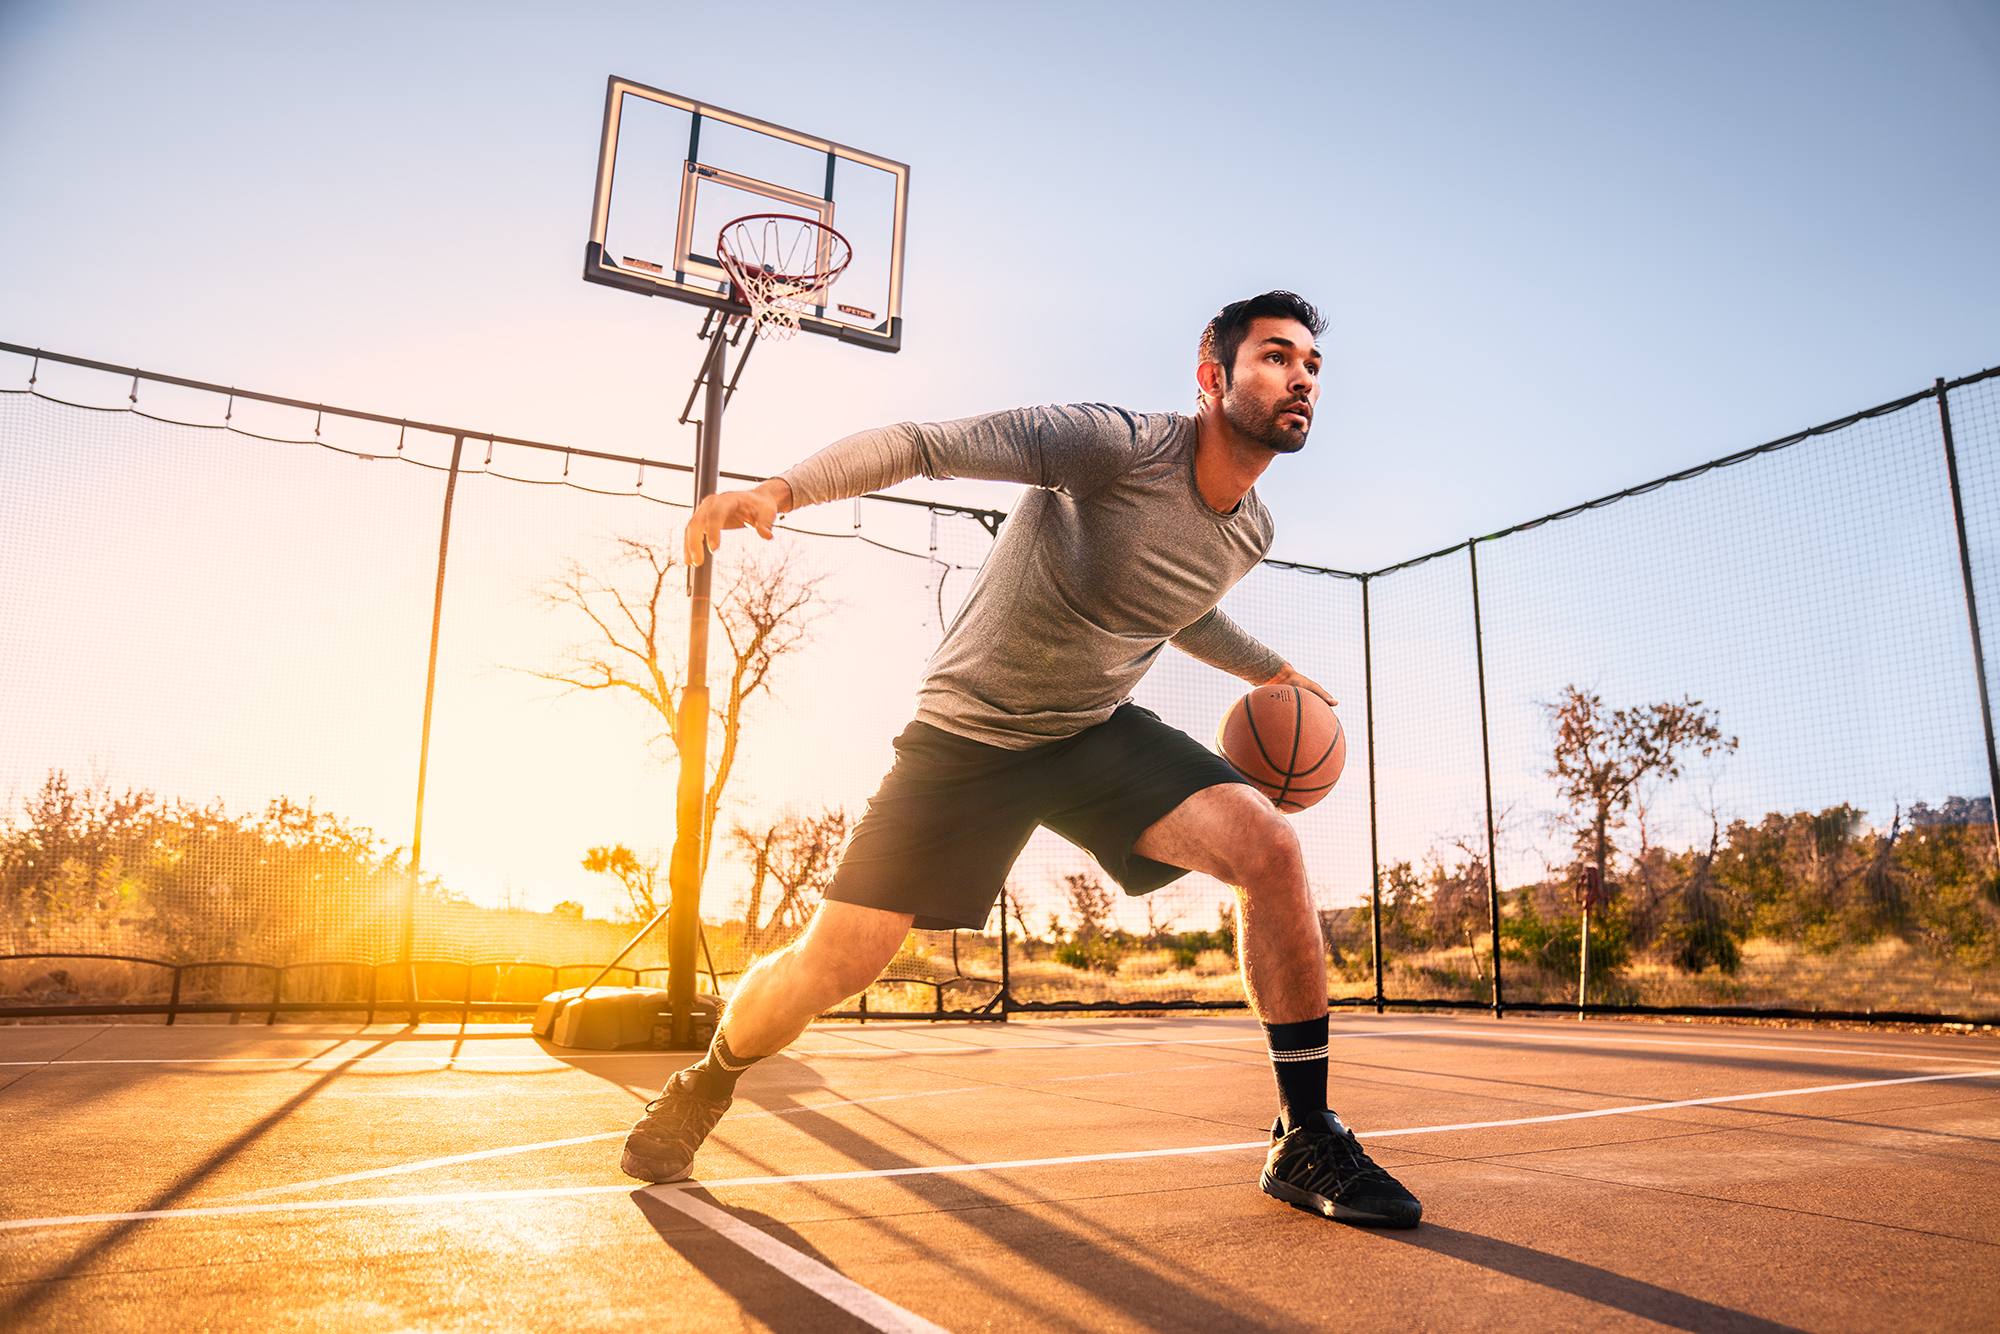 Outdoor Basketball Lifestyle - Lifetime